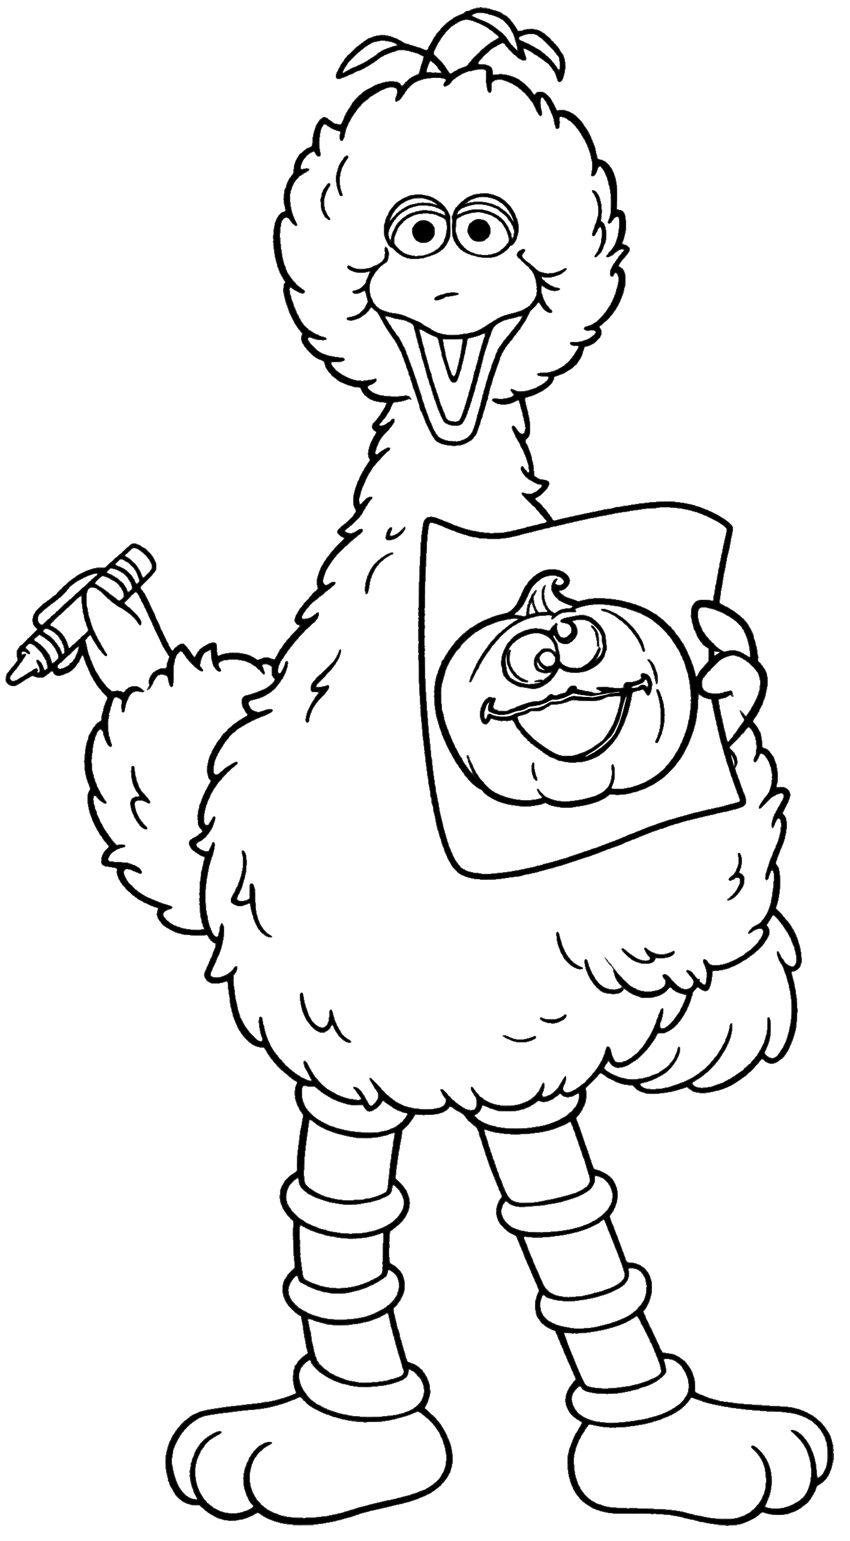 Halloween Coloring Pages | Halloween Big Bird from Sesame Street ...